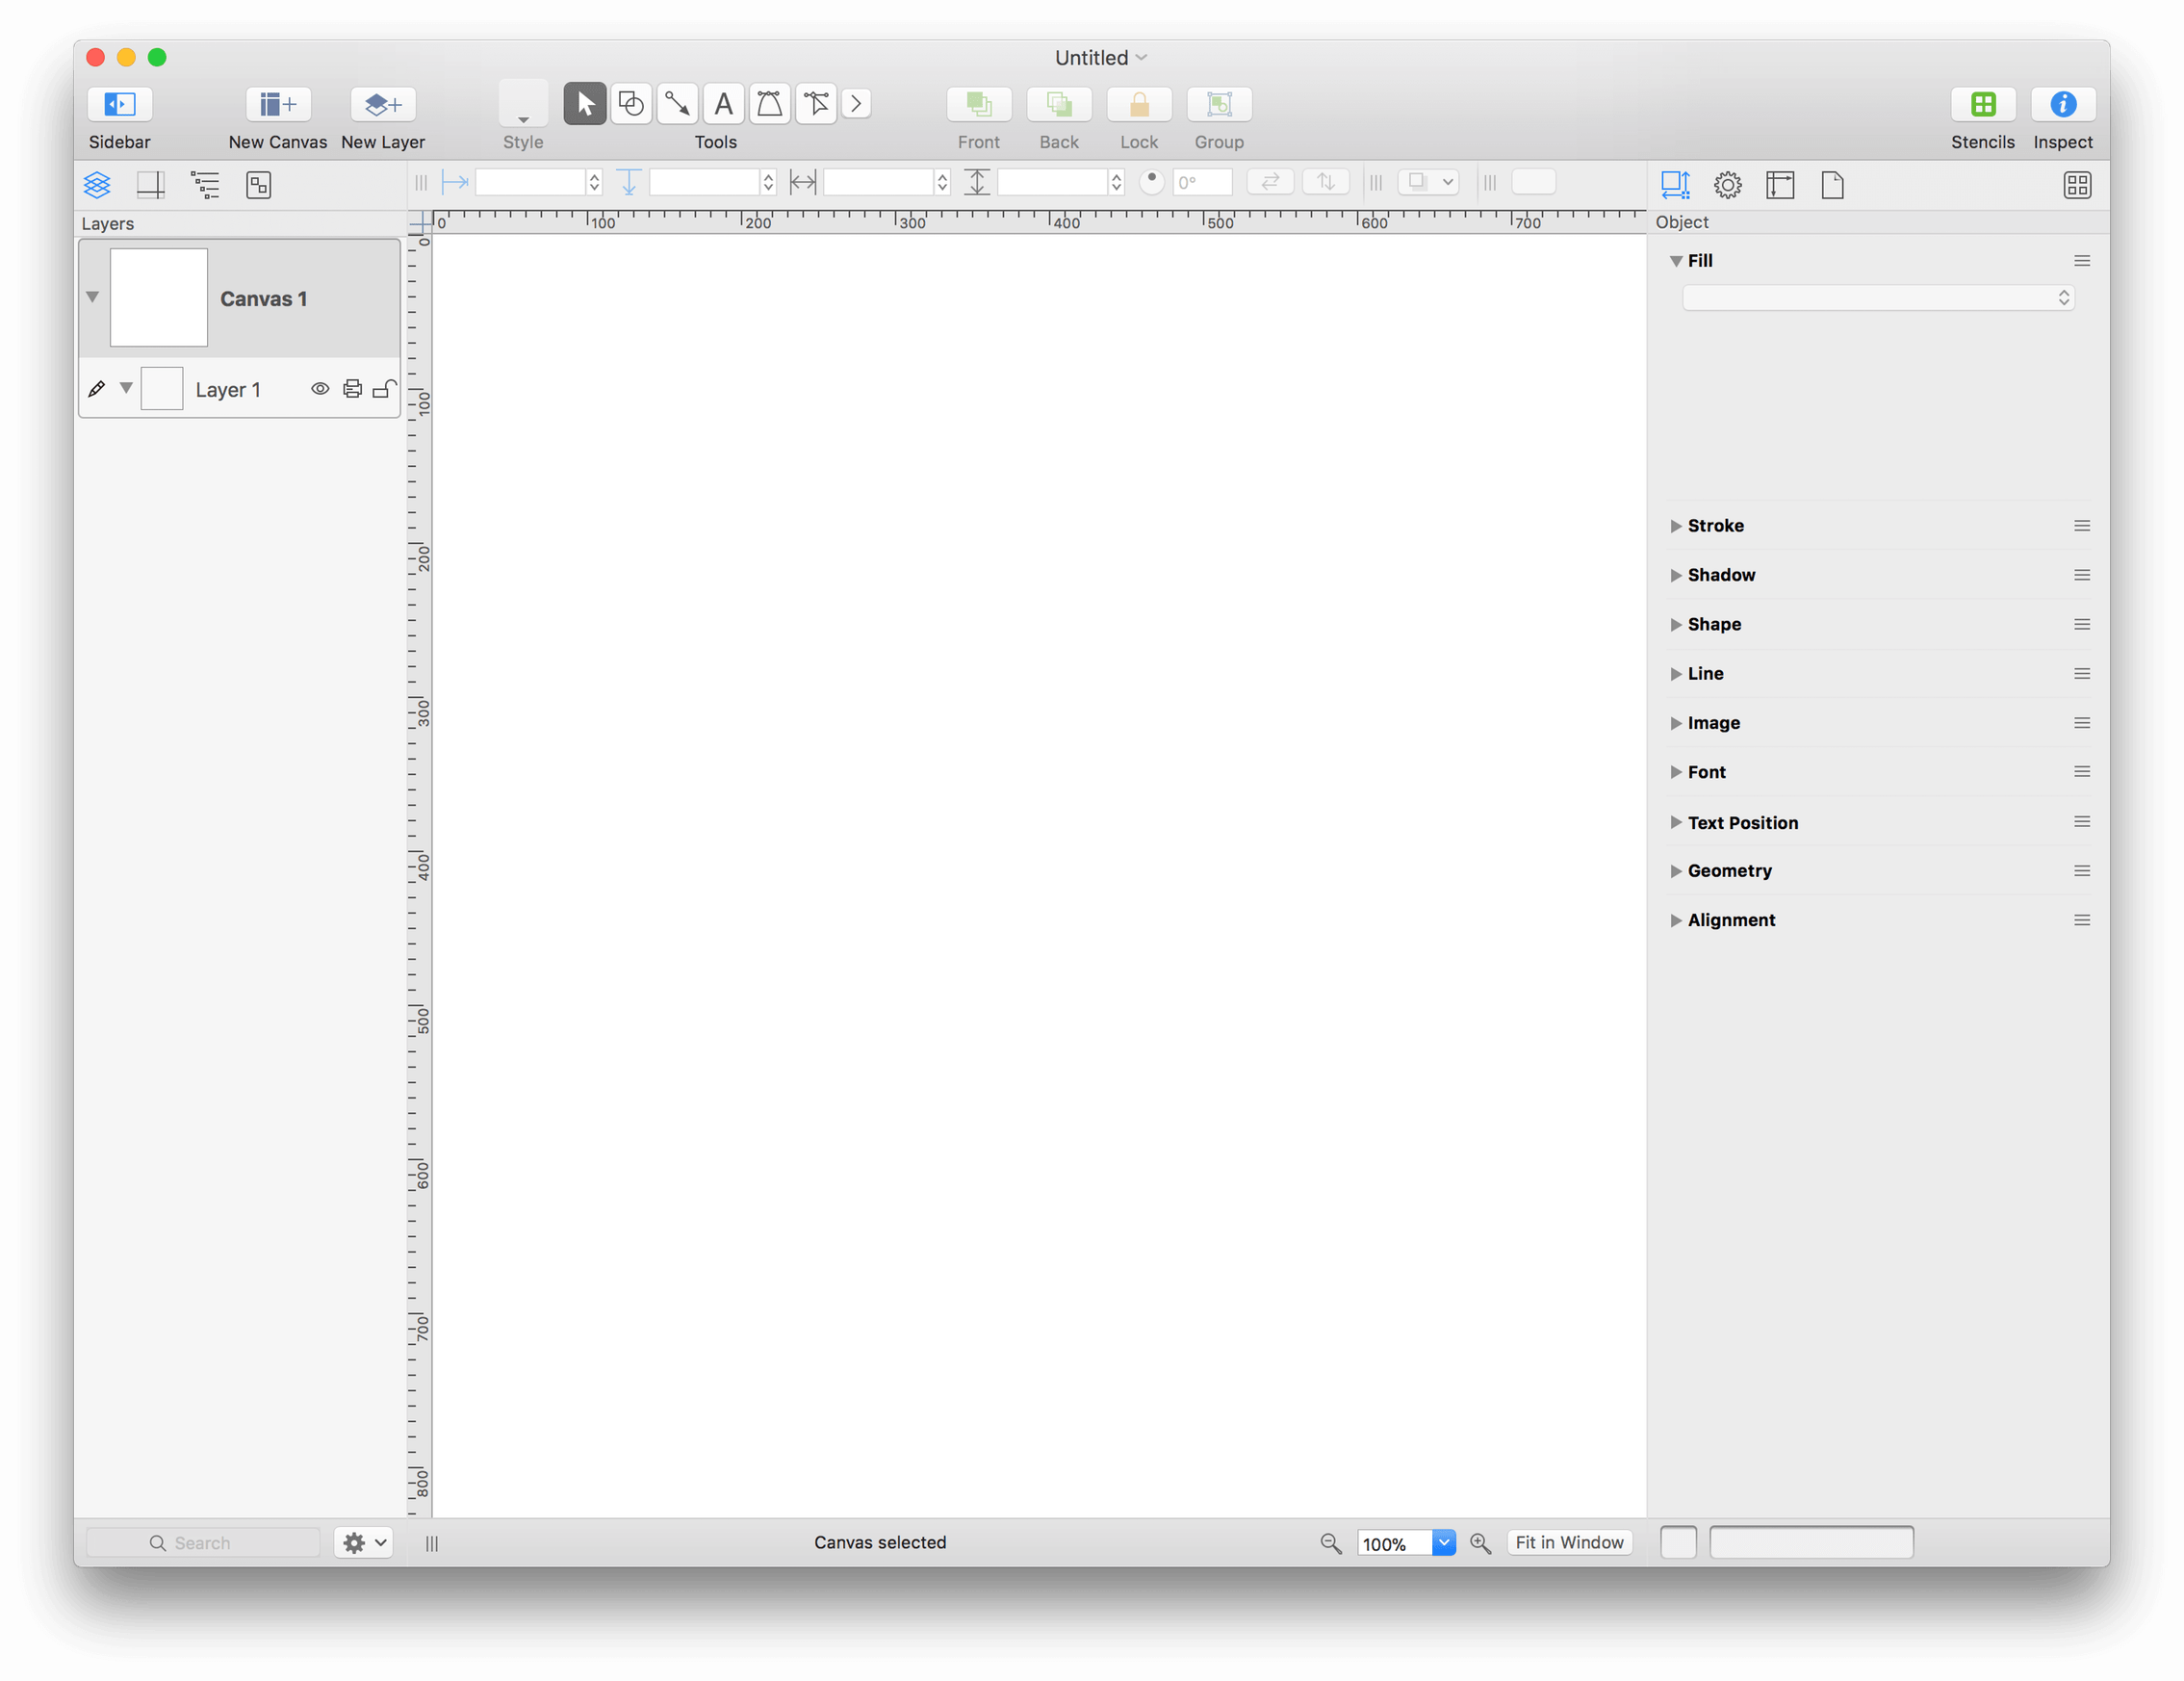 OmniGraffle, after opening the Blank template in a new document window